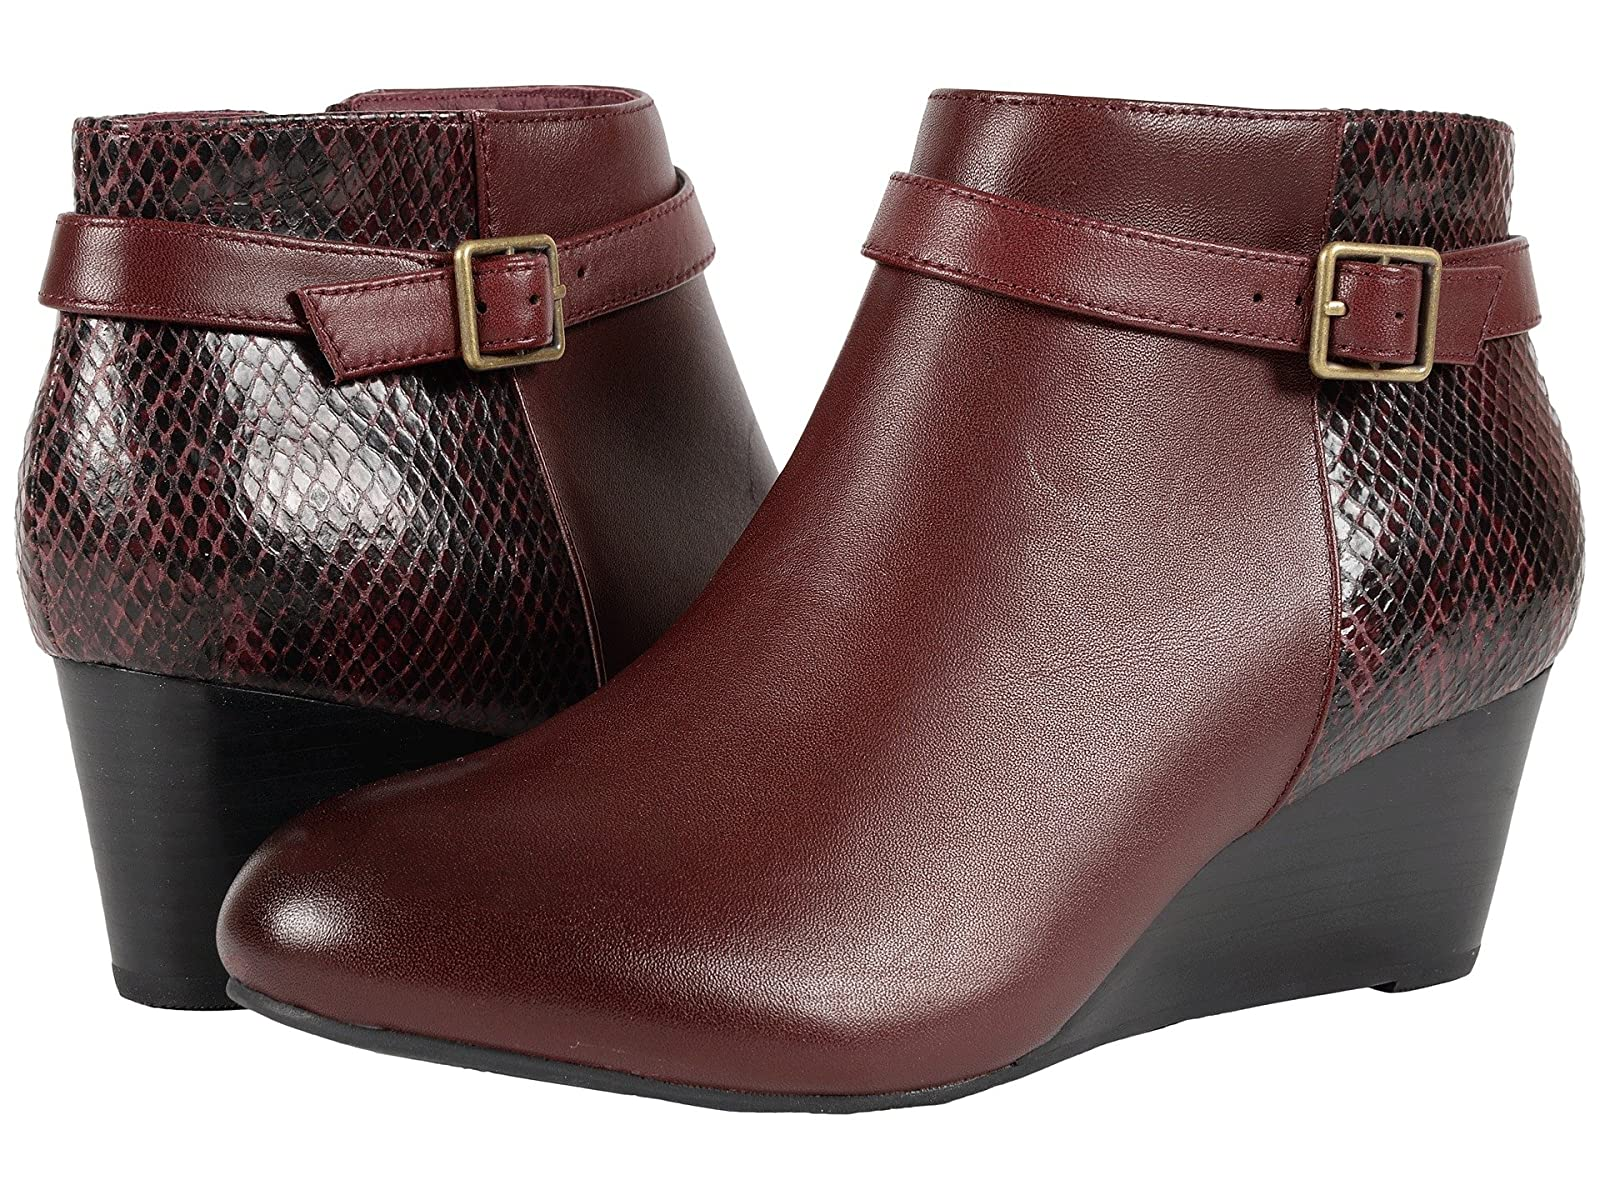 VIONIC Elevated Shasta Wedge BootCheap and distinctive eye-catching shoes